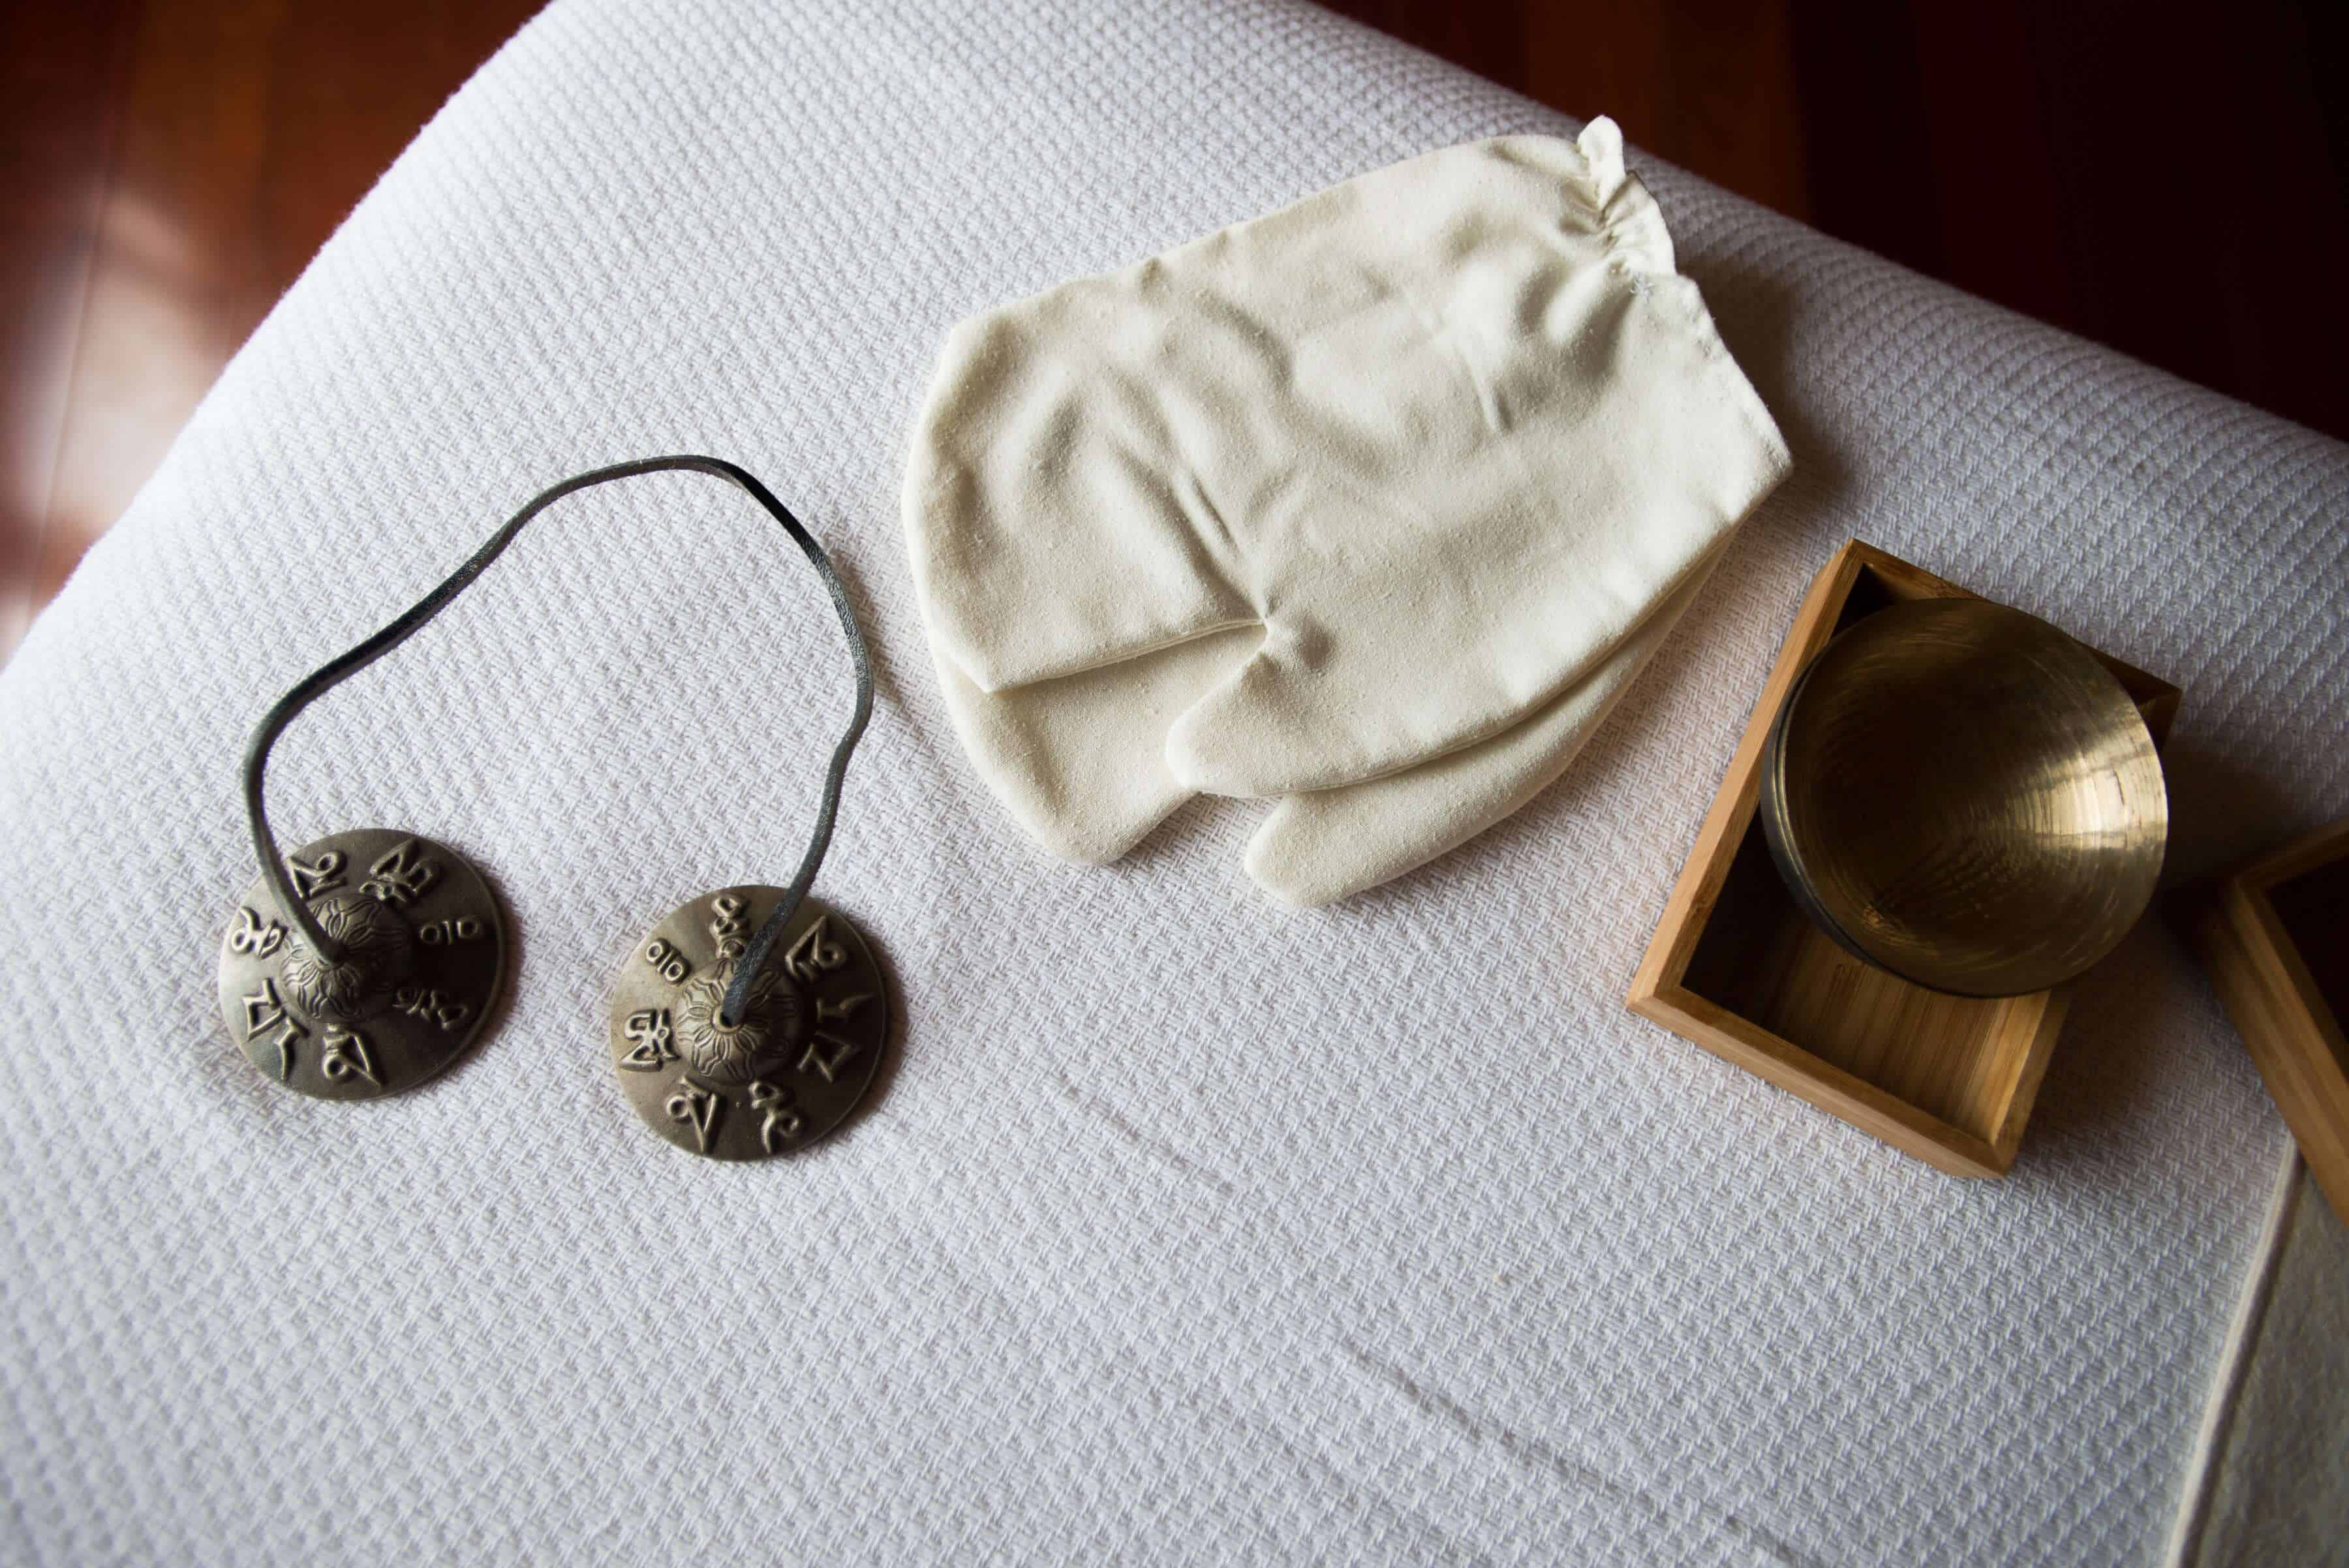 Ayurveda Spa Retreats feature a variety of treatments in comfortable surroundings